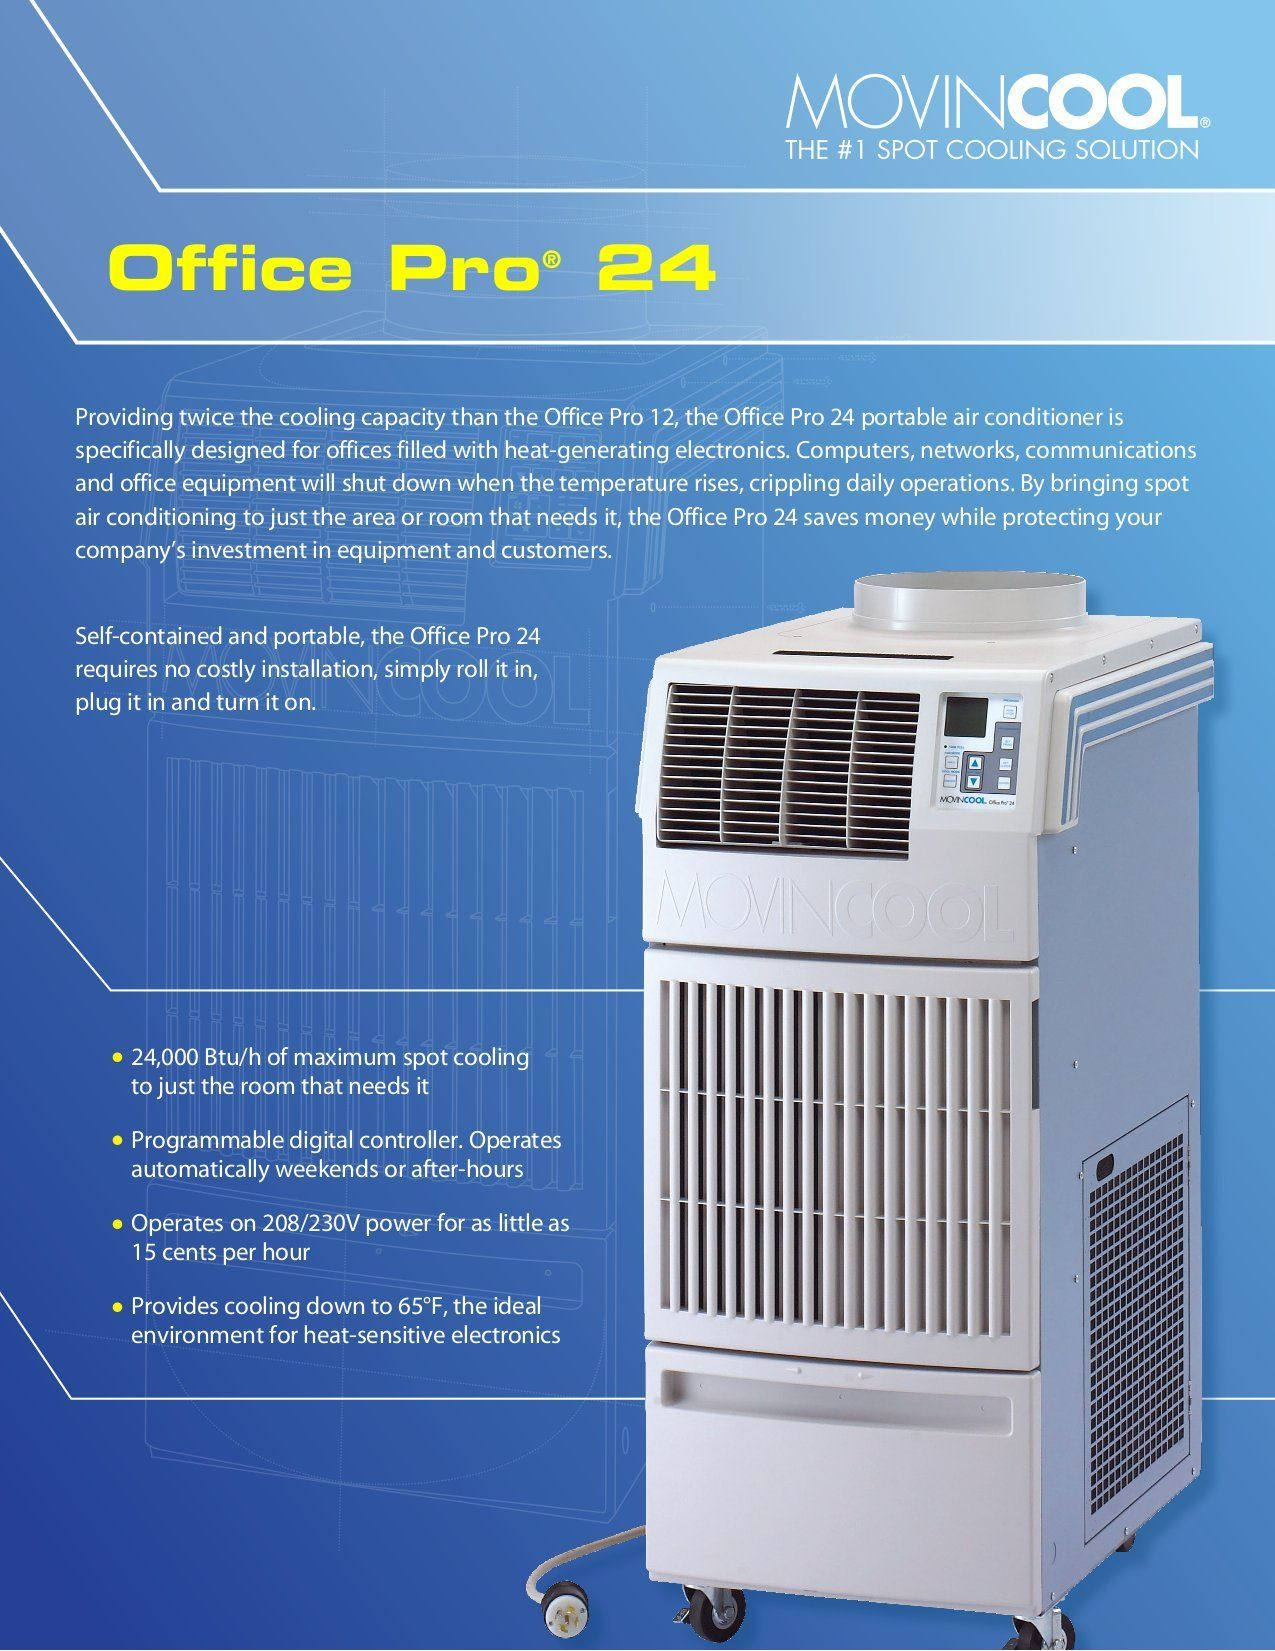 Movincool Office Pro24 24000 Btu Portable Air Conditioner Find Out More About The Grea Air Conditioning Maintenance Portable Air Conditioner Air Conditioner